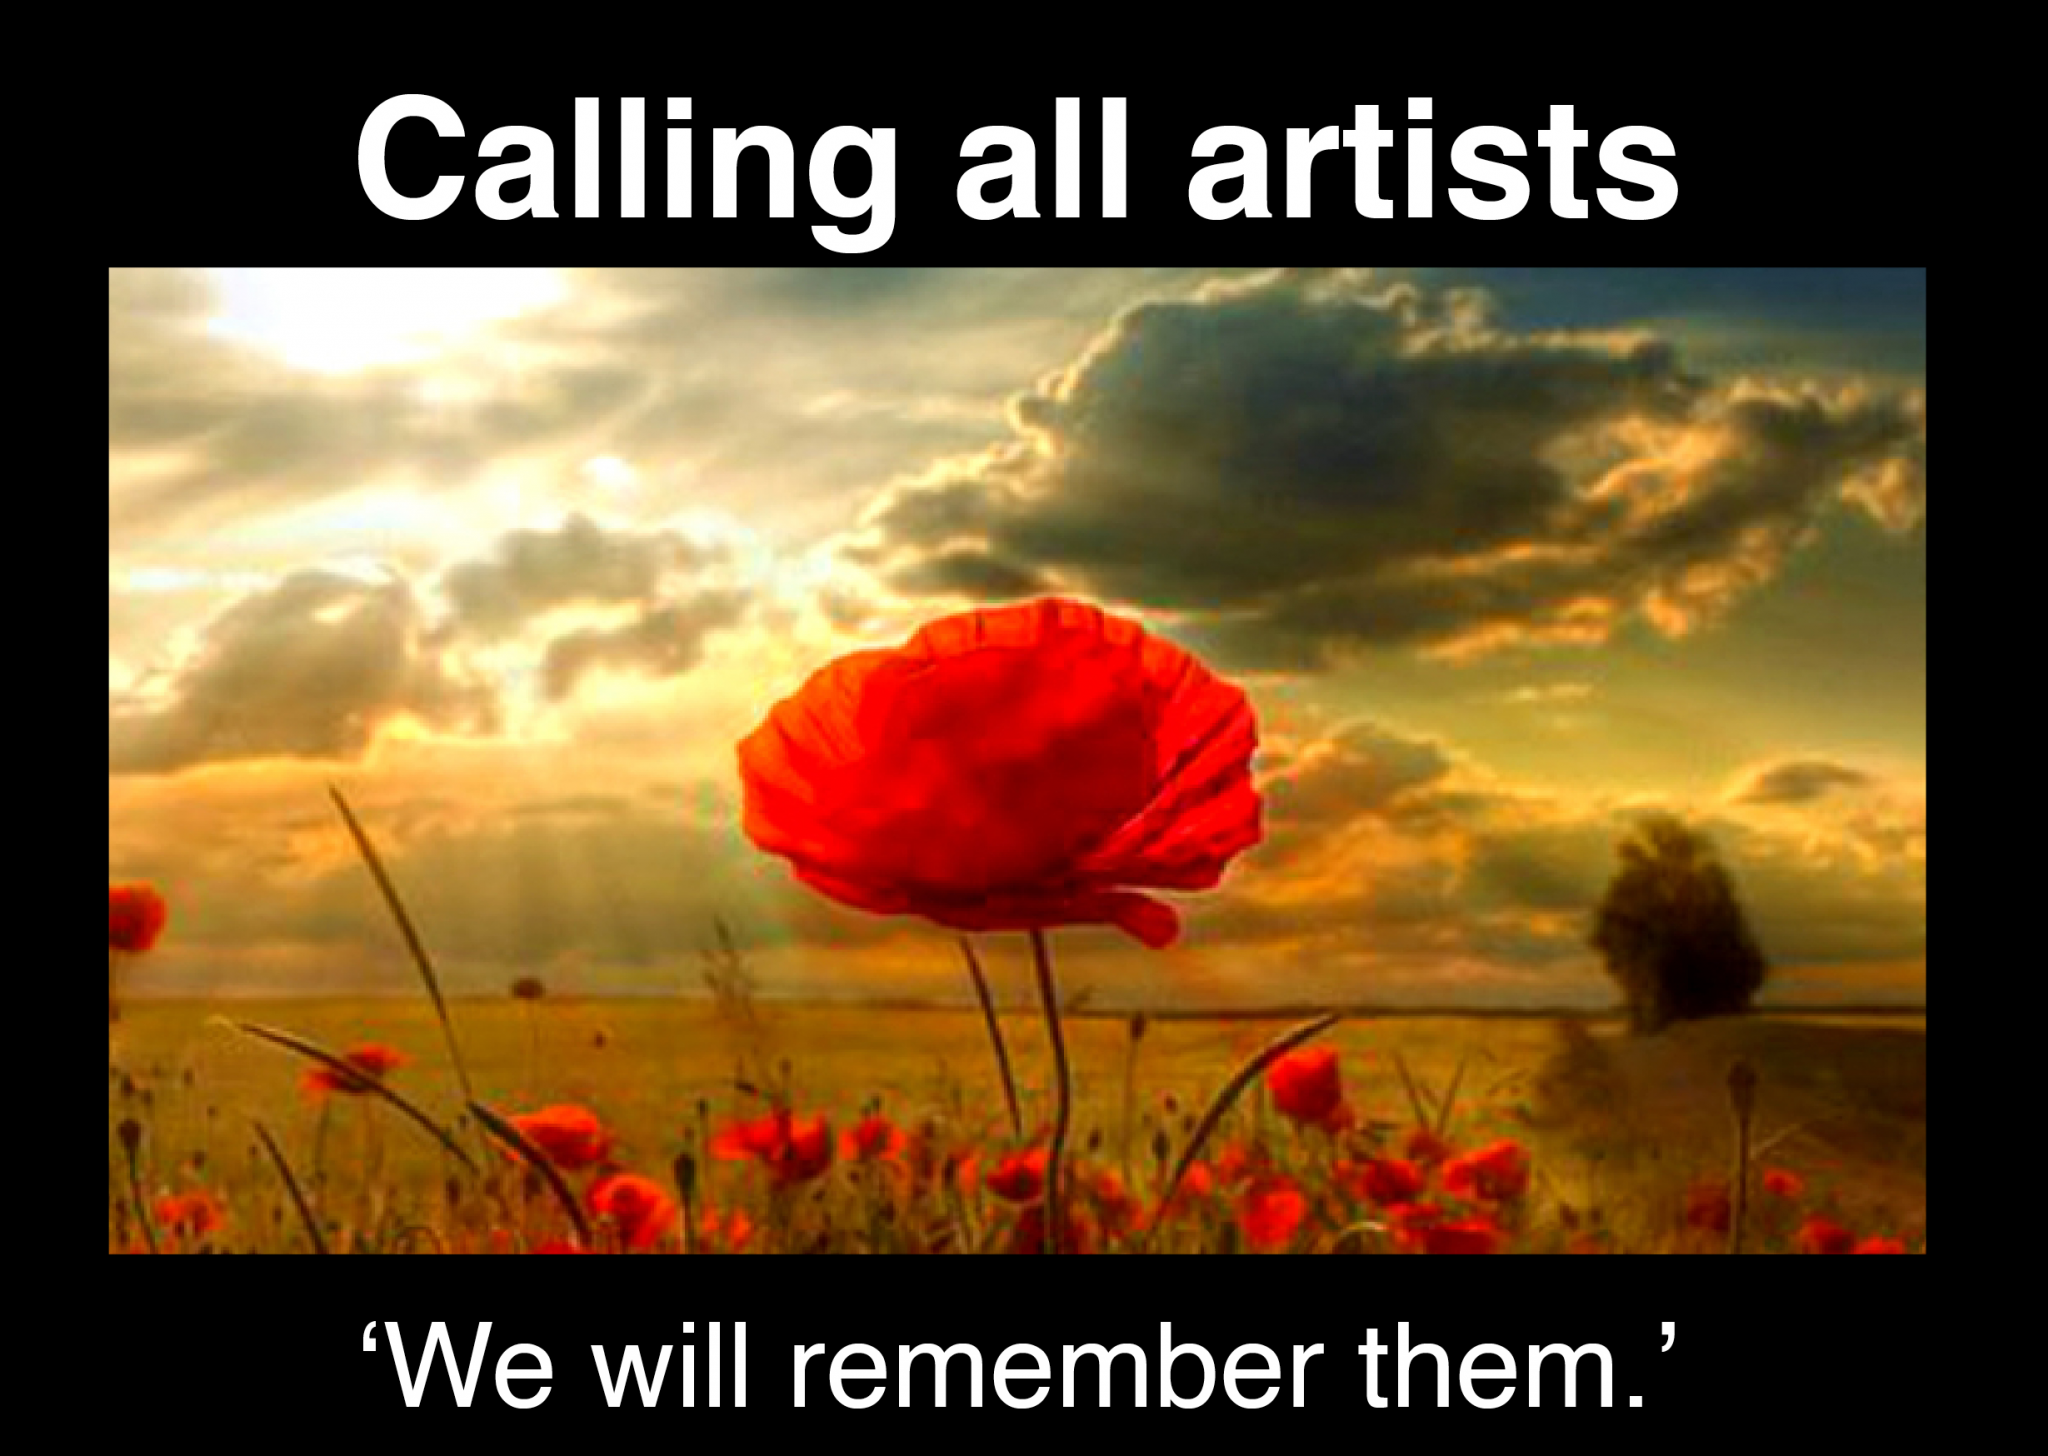 TAP Gallery is inviting artists to exhibit from April 23 to May 7, 2014